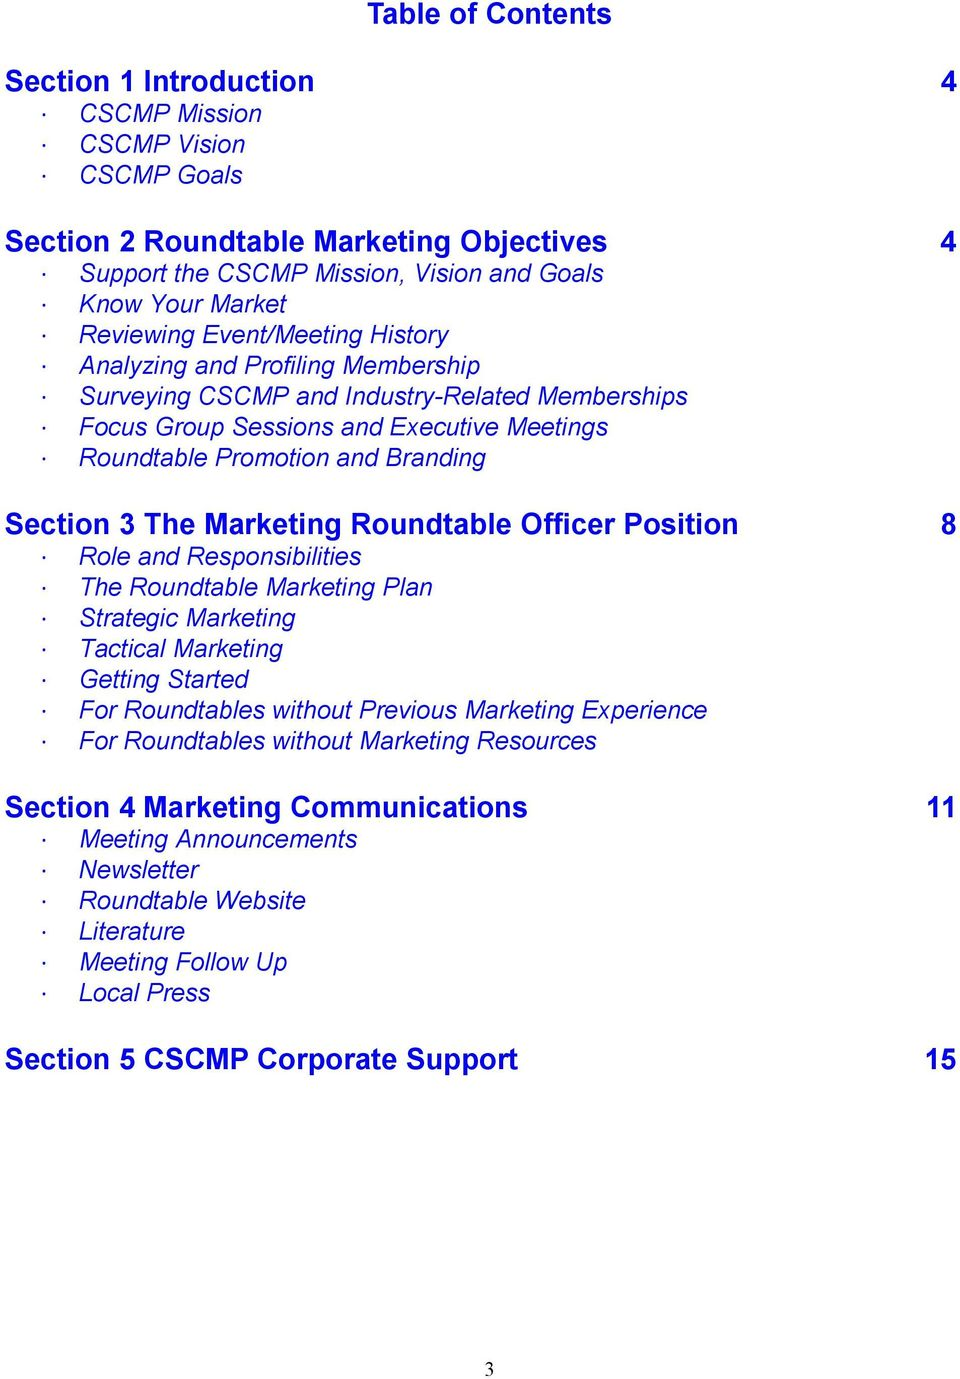 Marketing Roundtable Officer Position 8 Role and Responsibilities The Roundtable Marketing Plan Strategic Marketing Tactical Marketing Getting Started For Roundtables without Previous Marketing